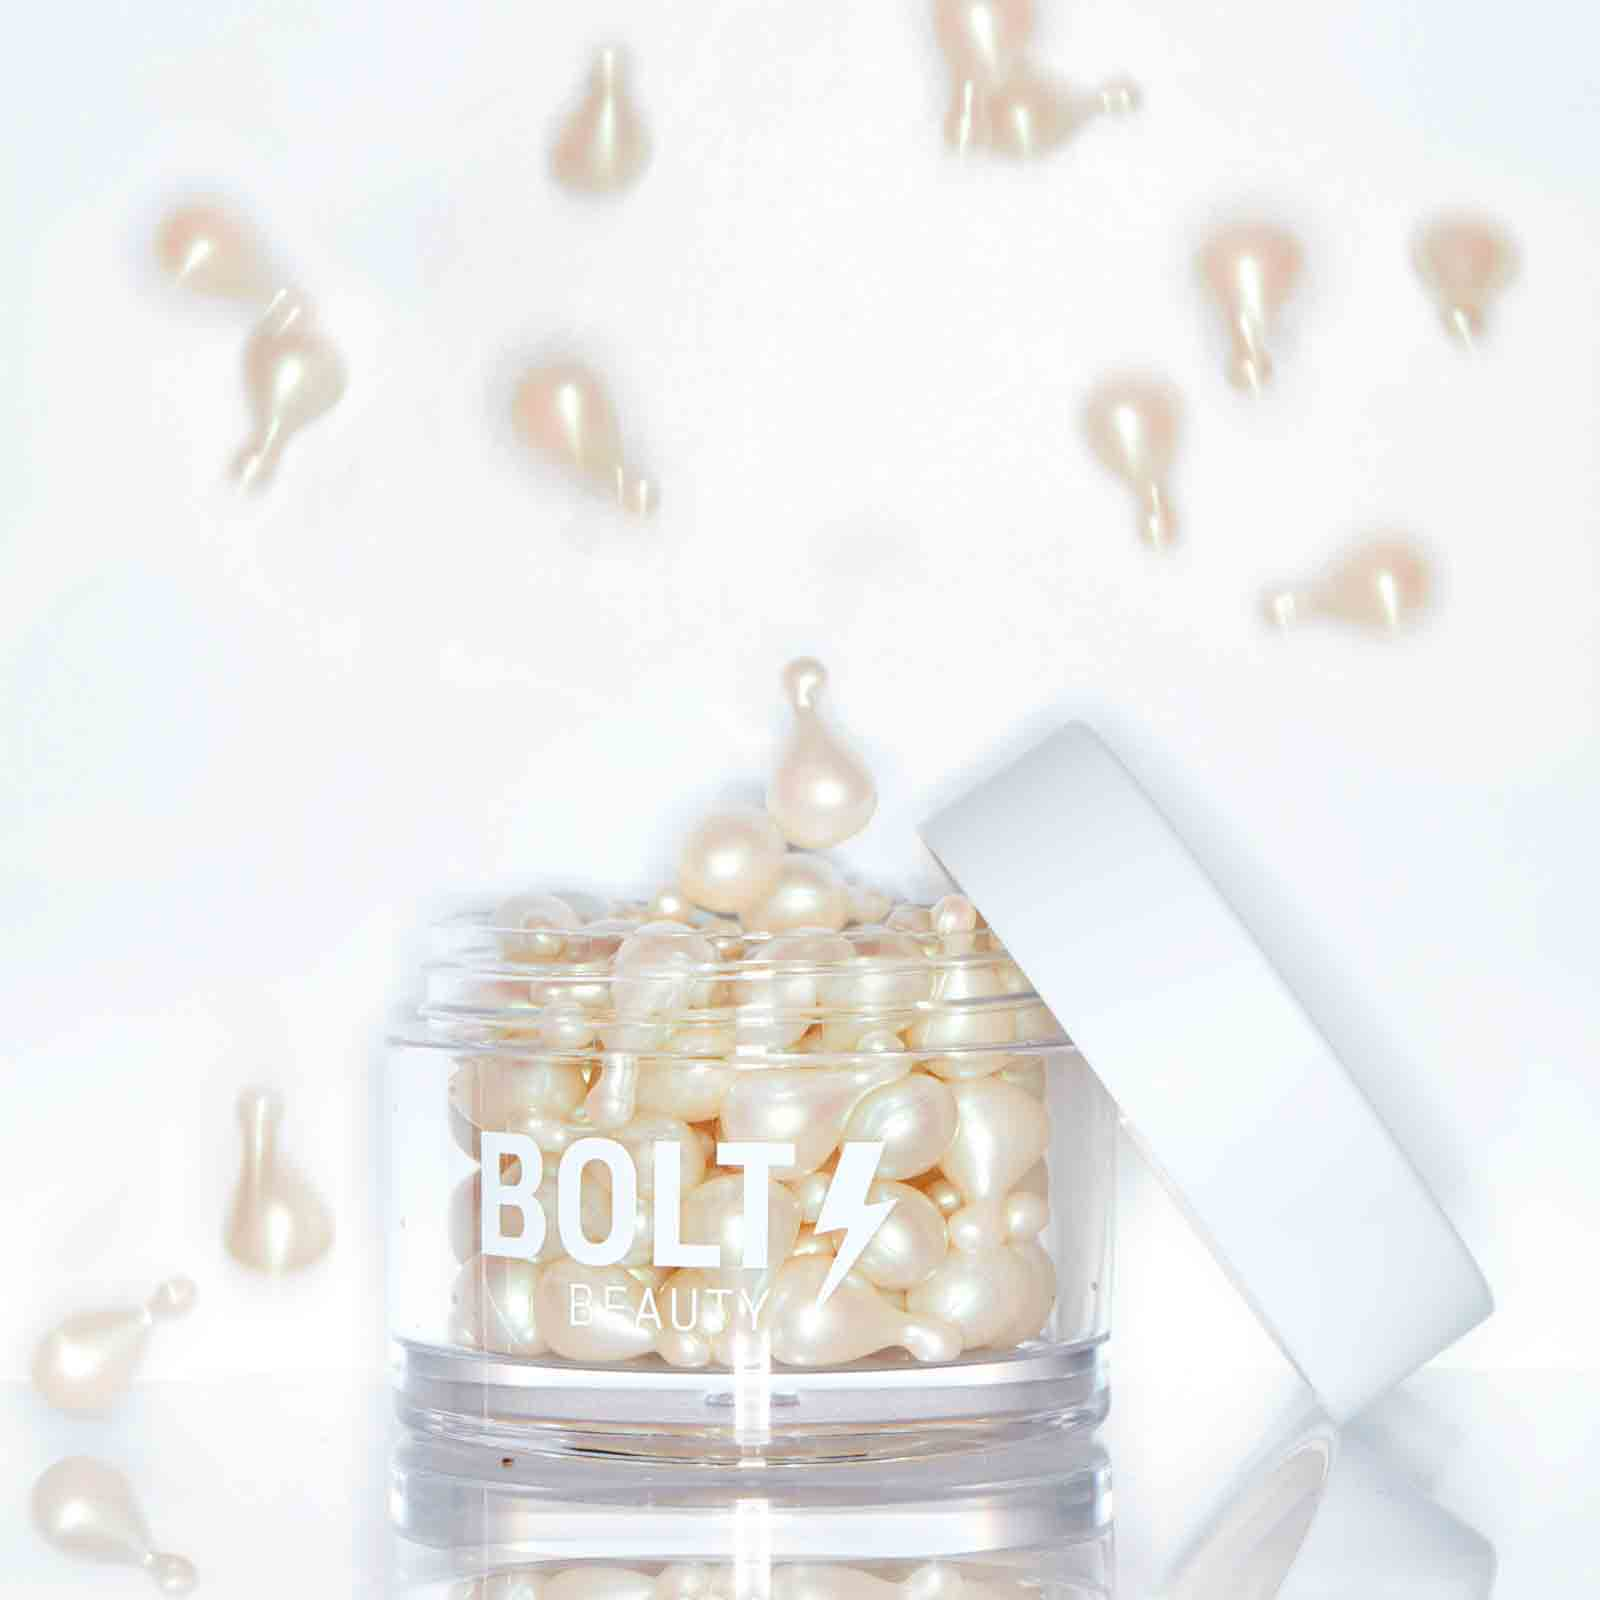 Bolt Beauty - Travel skincare